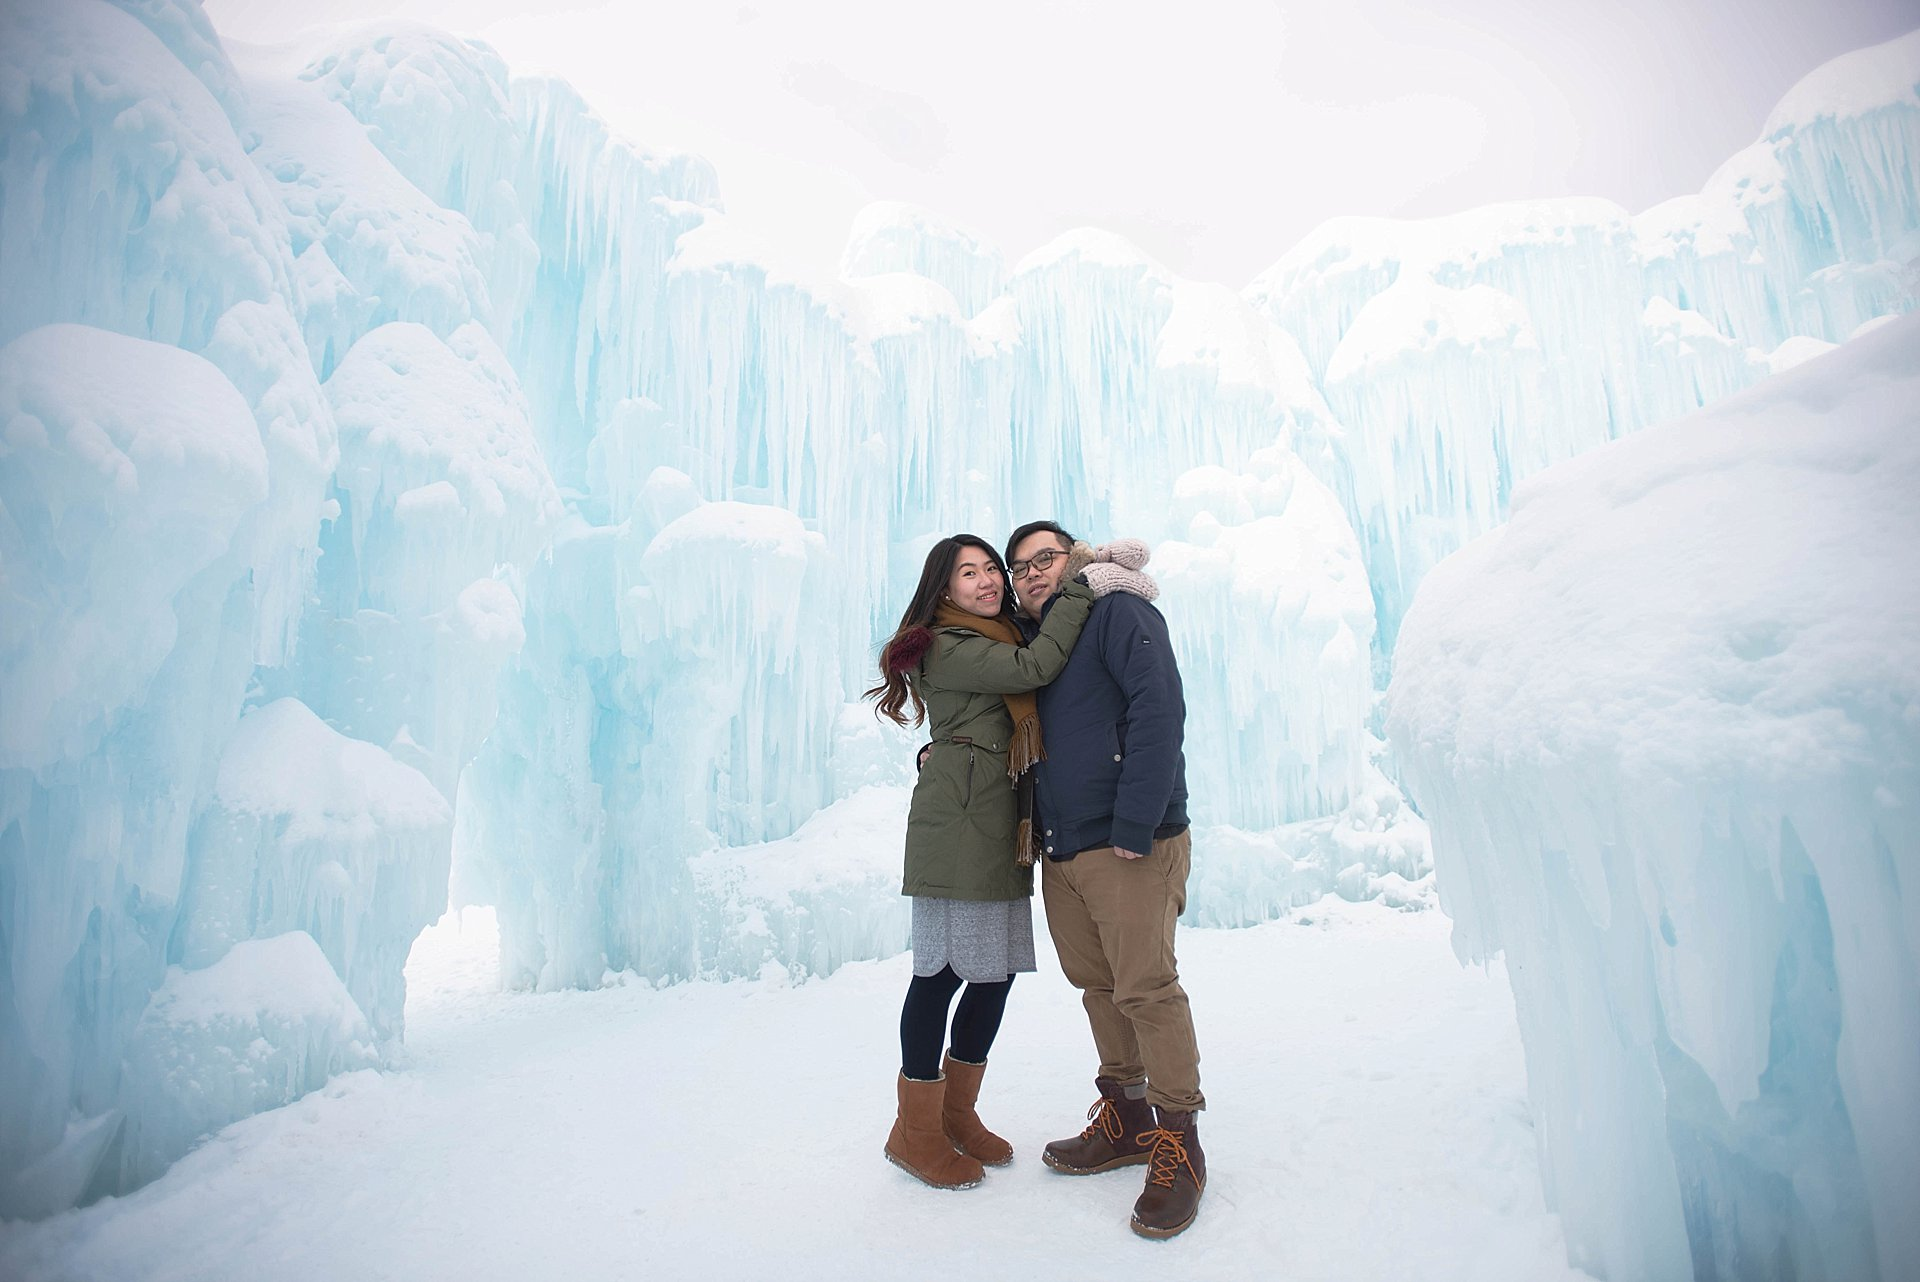 VJ-Ice-castles-engagement-photography_0006